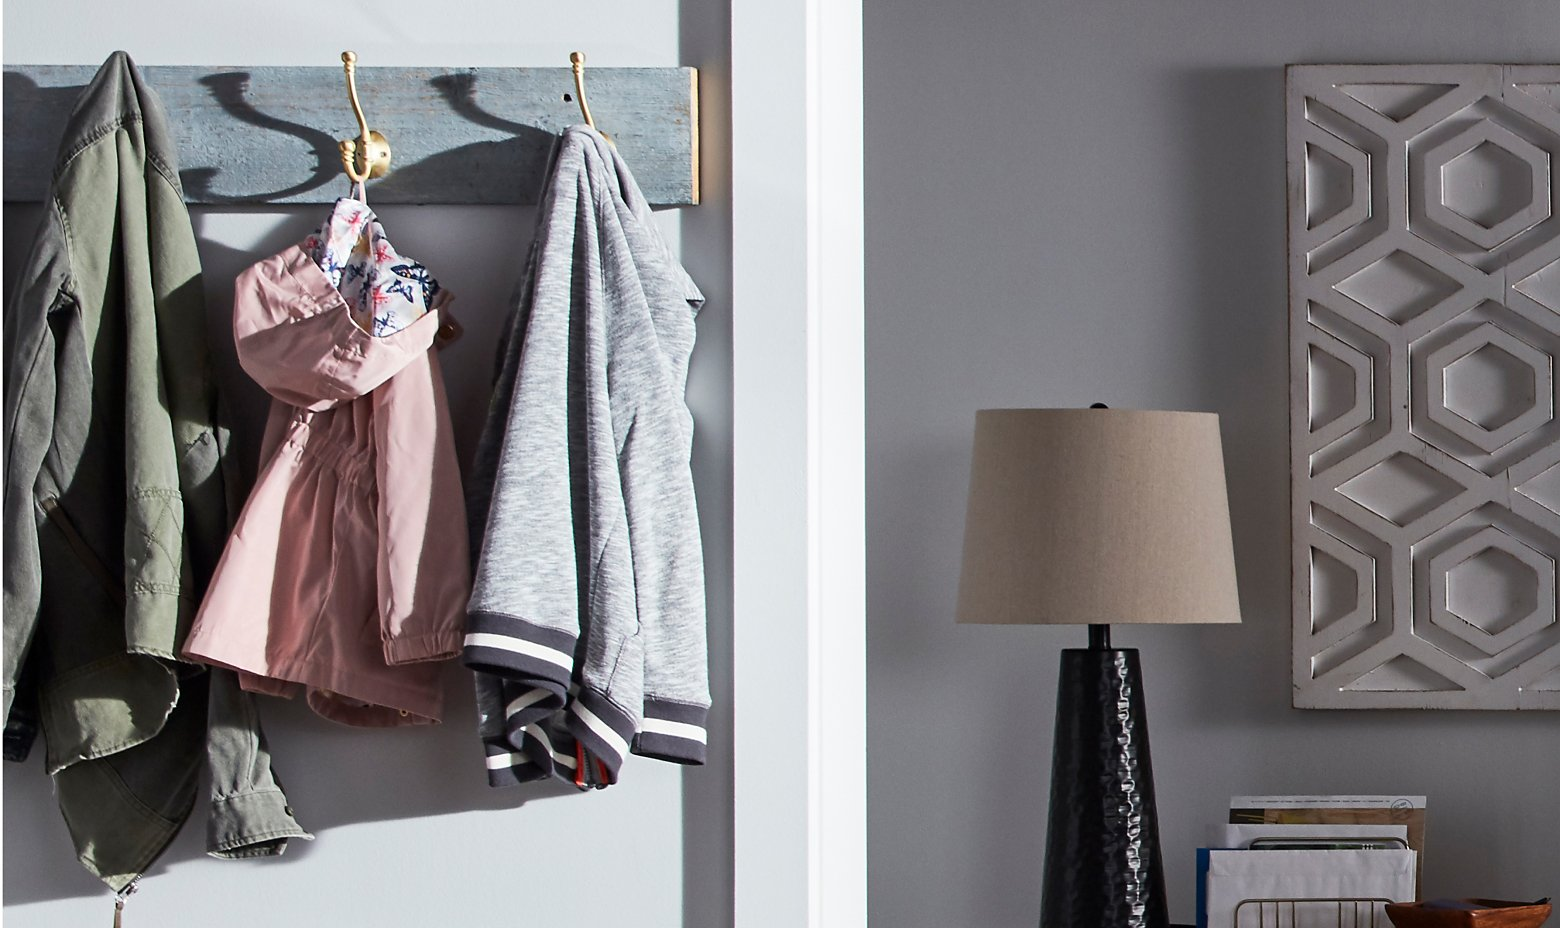 Clothes hanging on a rack in modern living room